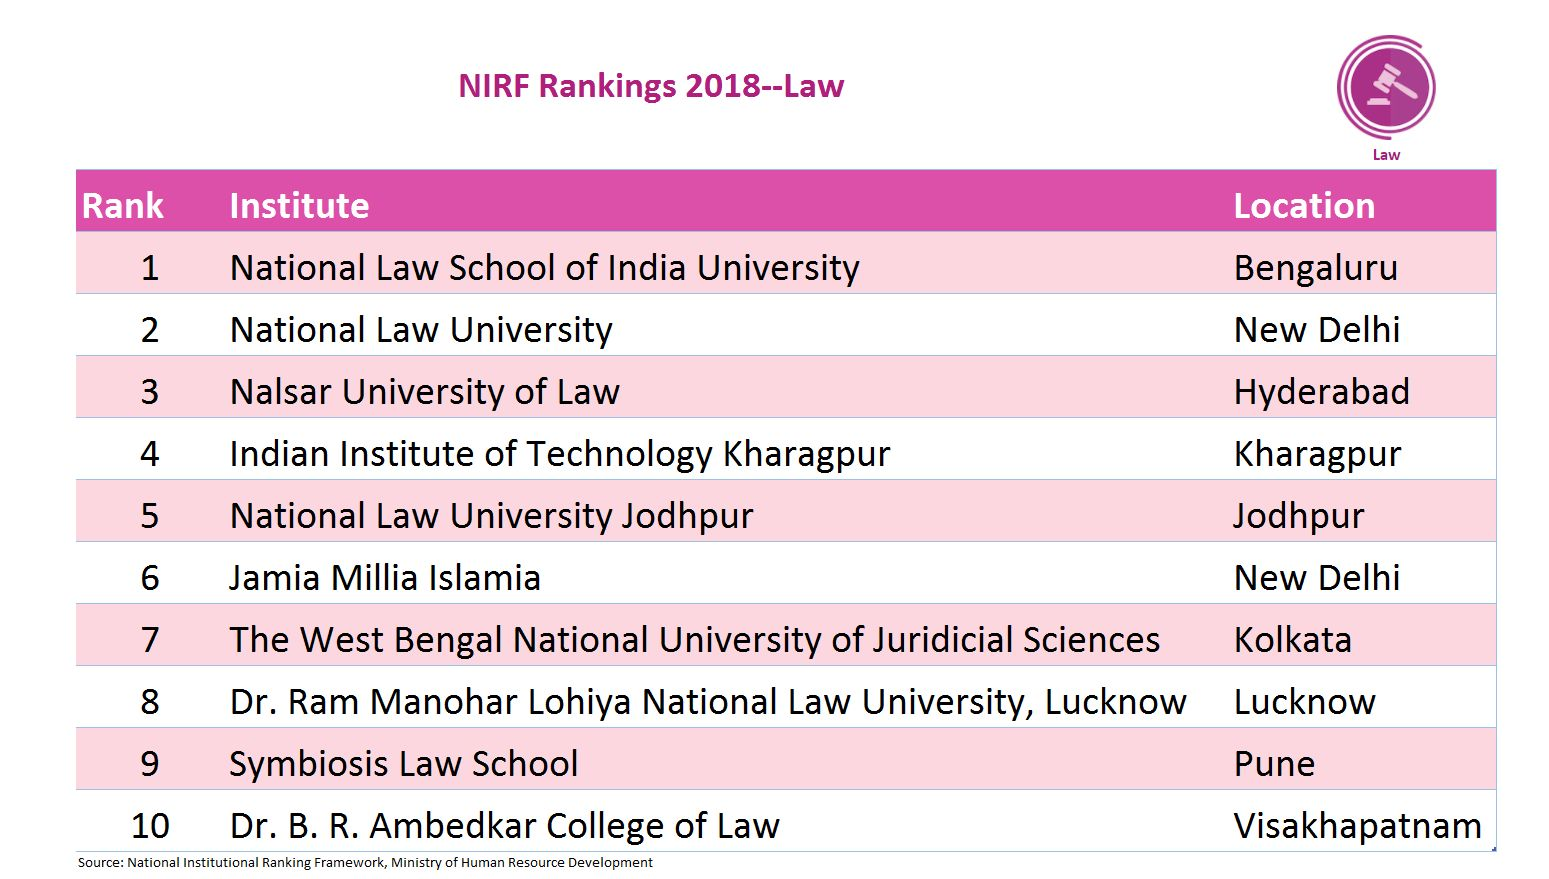 Bengaluru's NLSIU topped the list among law schools. This category had representation from across regions in the country including Pune, Kolkata, New Delhi, Lucknow and Visakhapatnam.